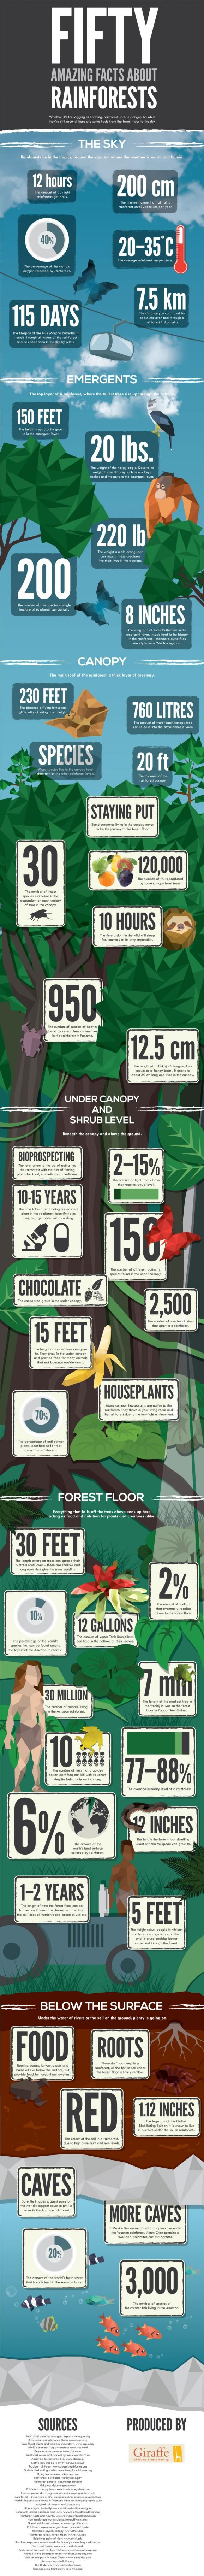 50 Amazing facts about the rainforest (Infographic)   ScienceDump